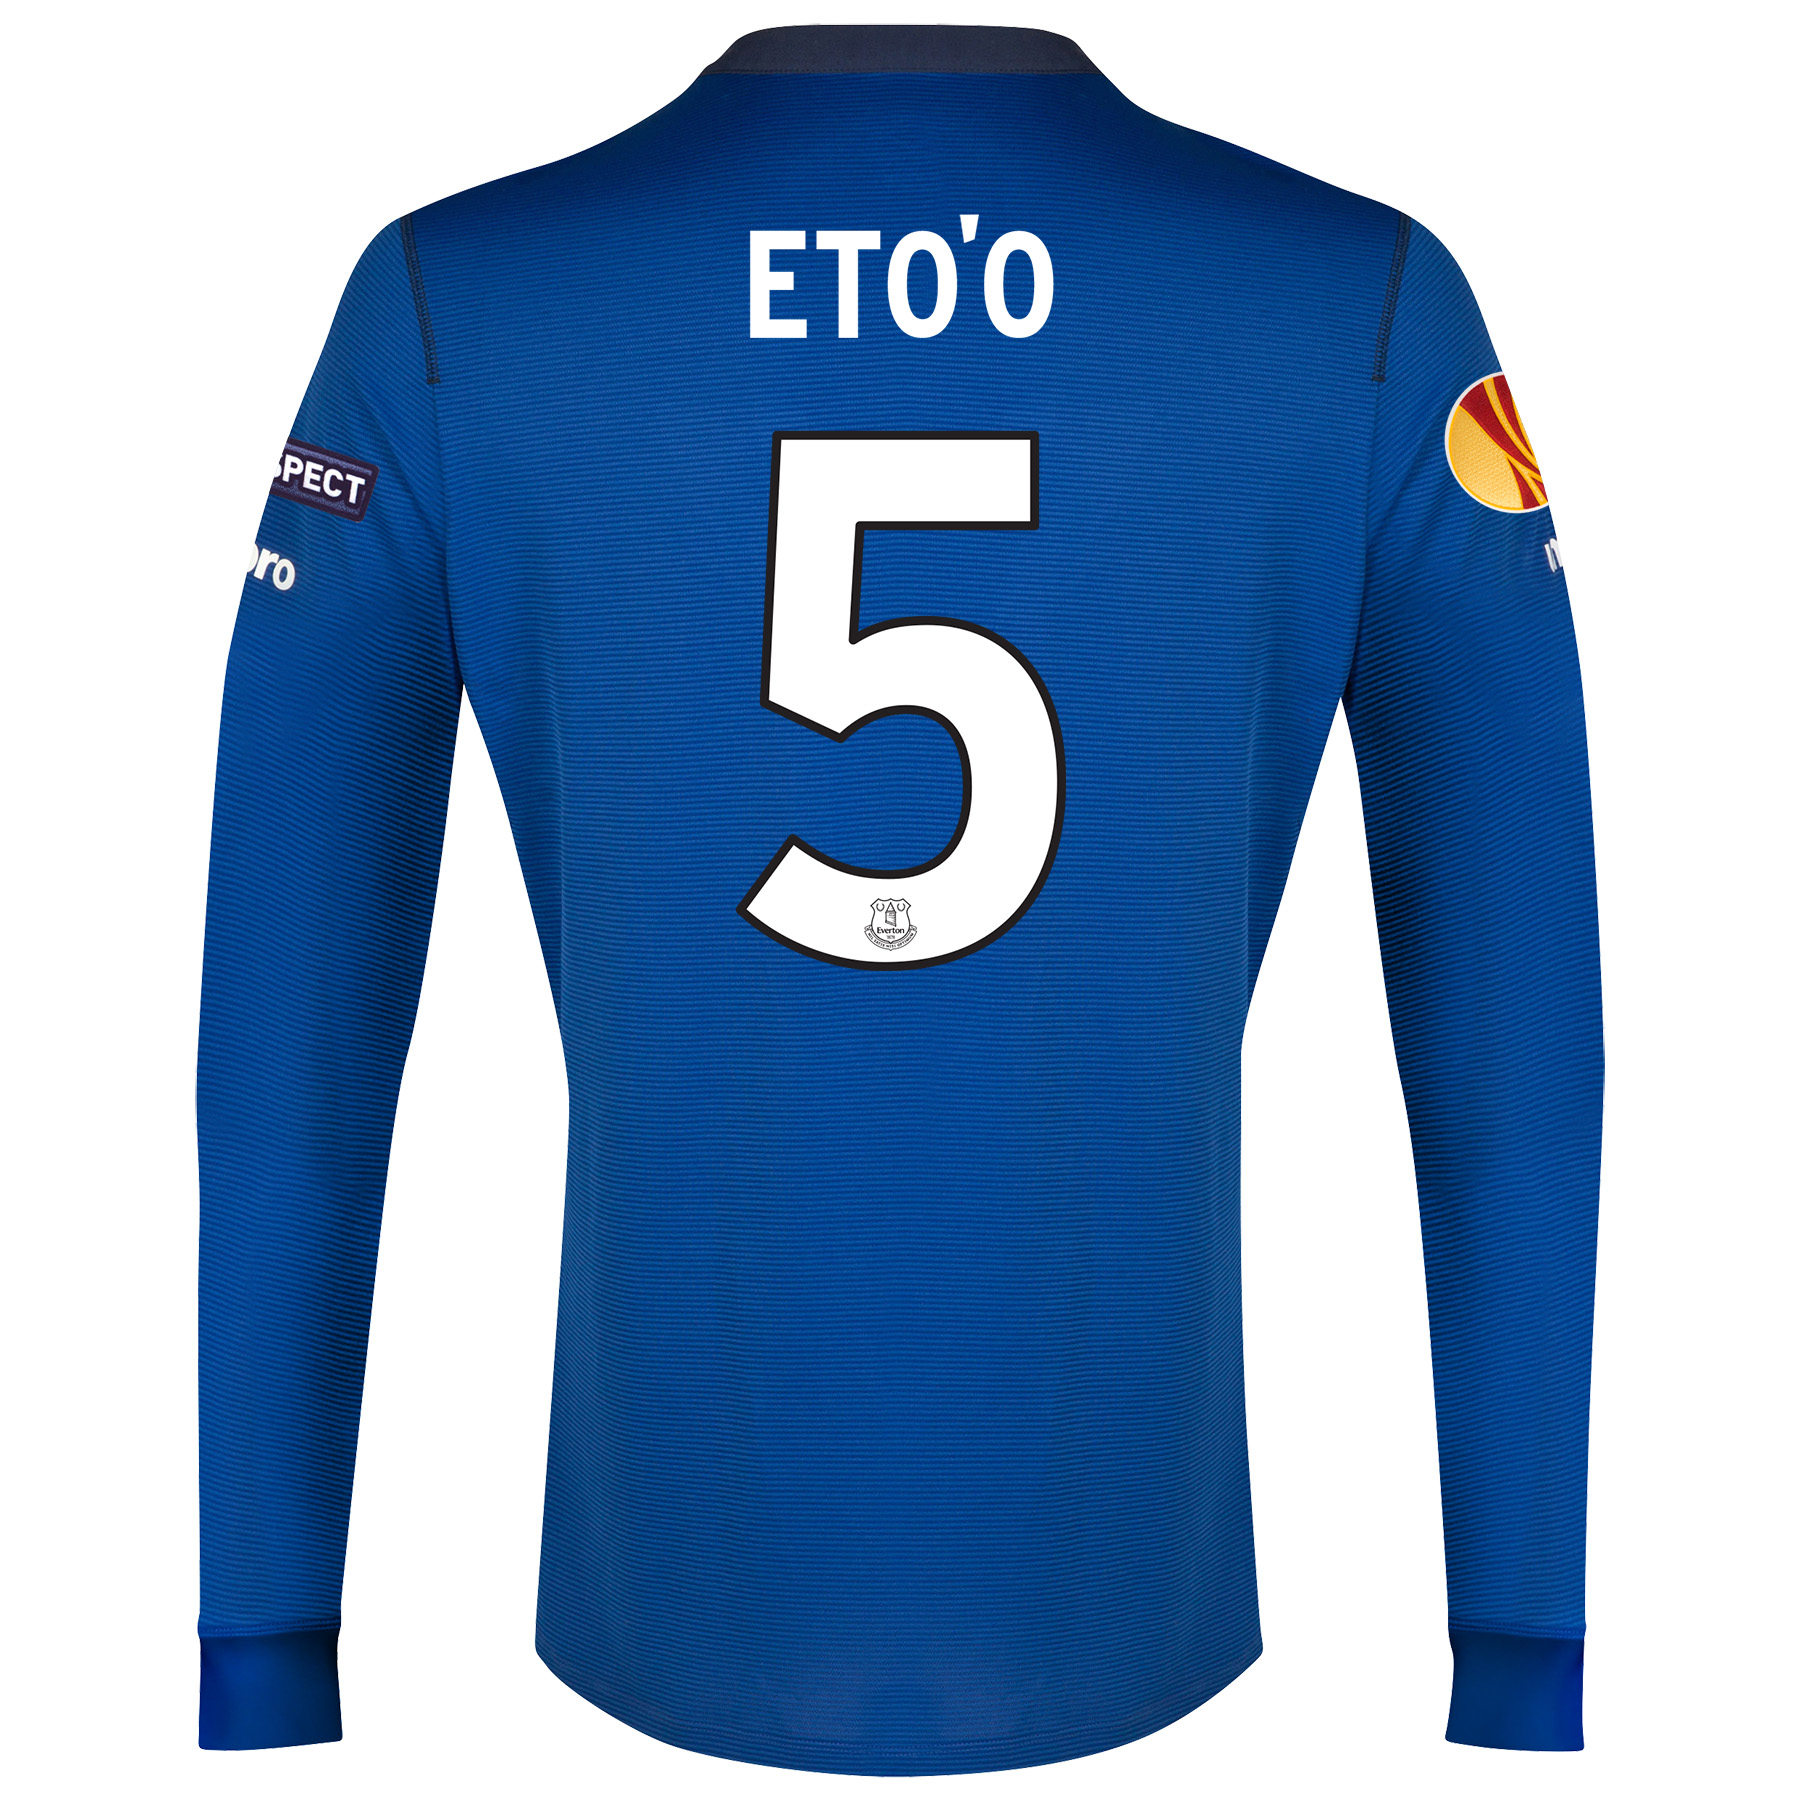 Everton UEFA Europa League LS Home Shirt 2014/15 - Junior with Eto'o 5 printing